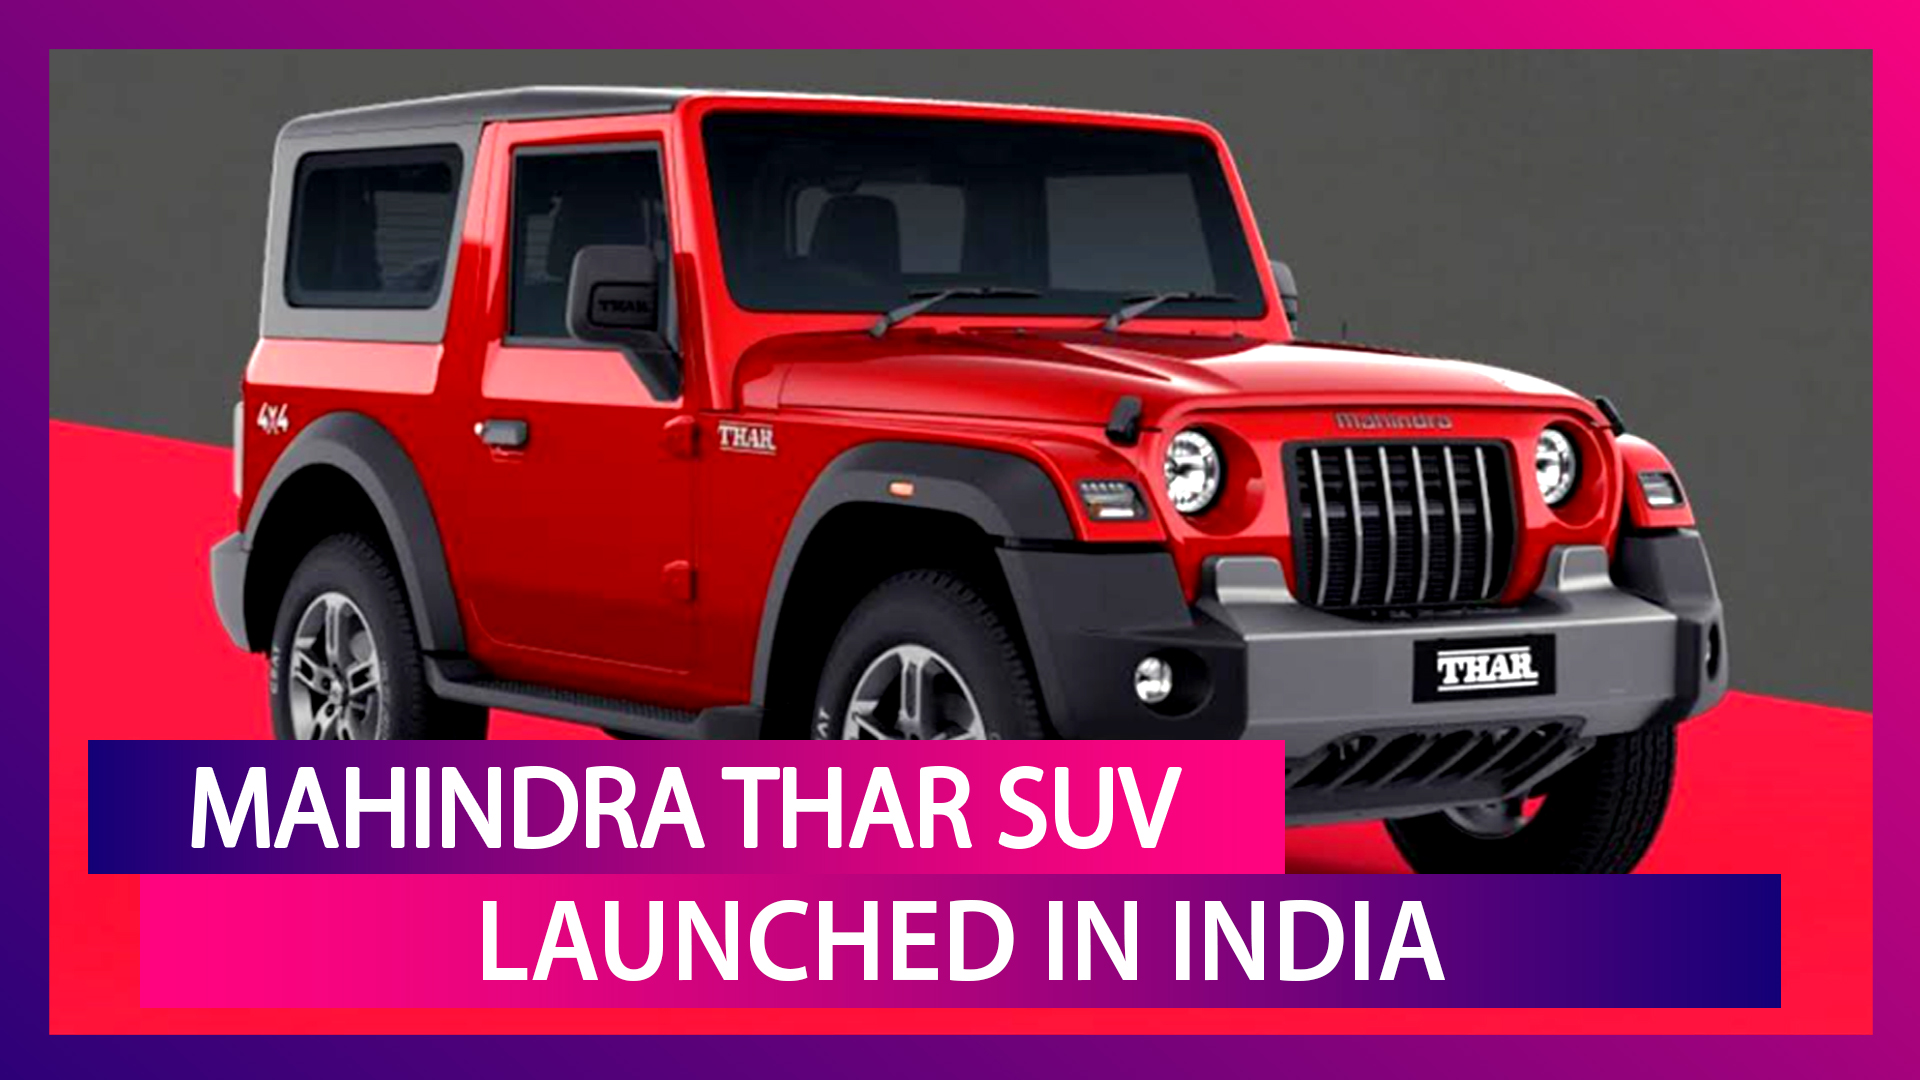 2020 Mahindra Thar Launched in India at Rs 9.80 Lakh; Prices, Features, Variants & Specifications